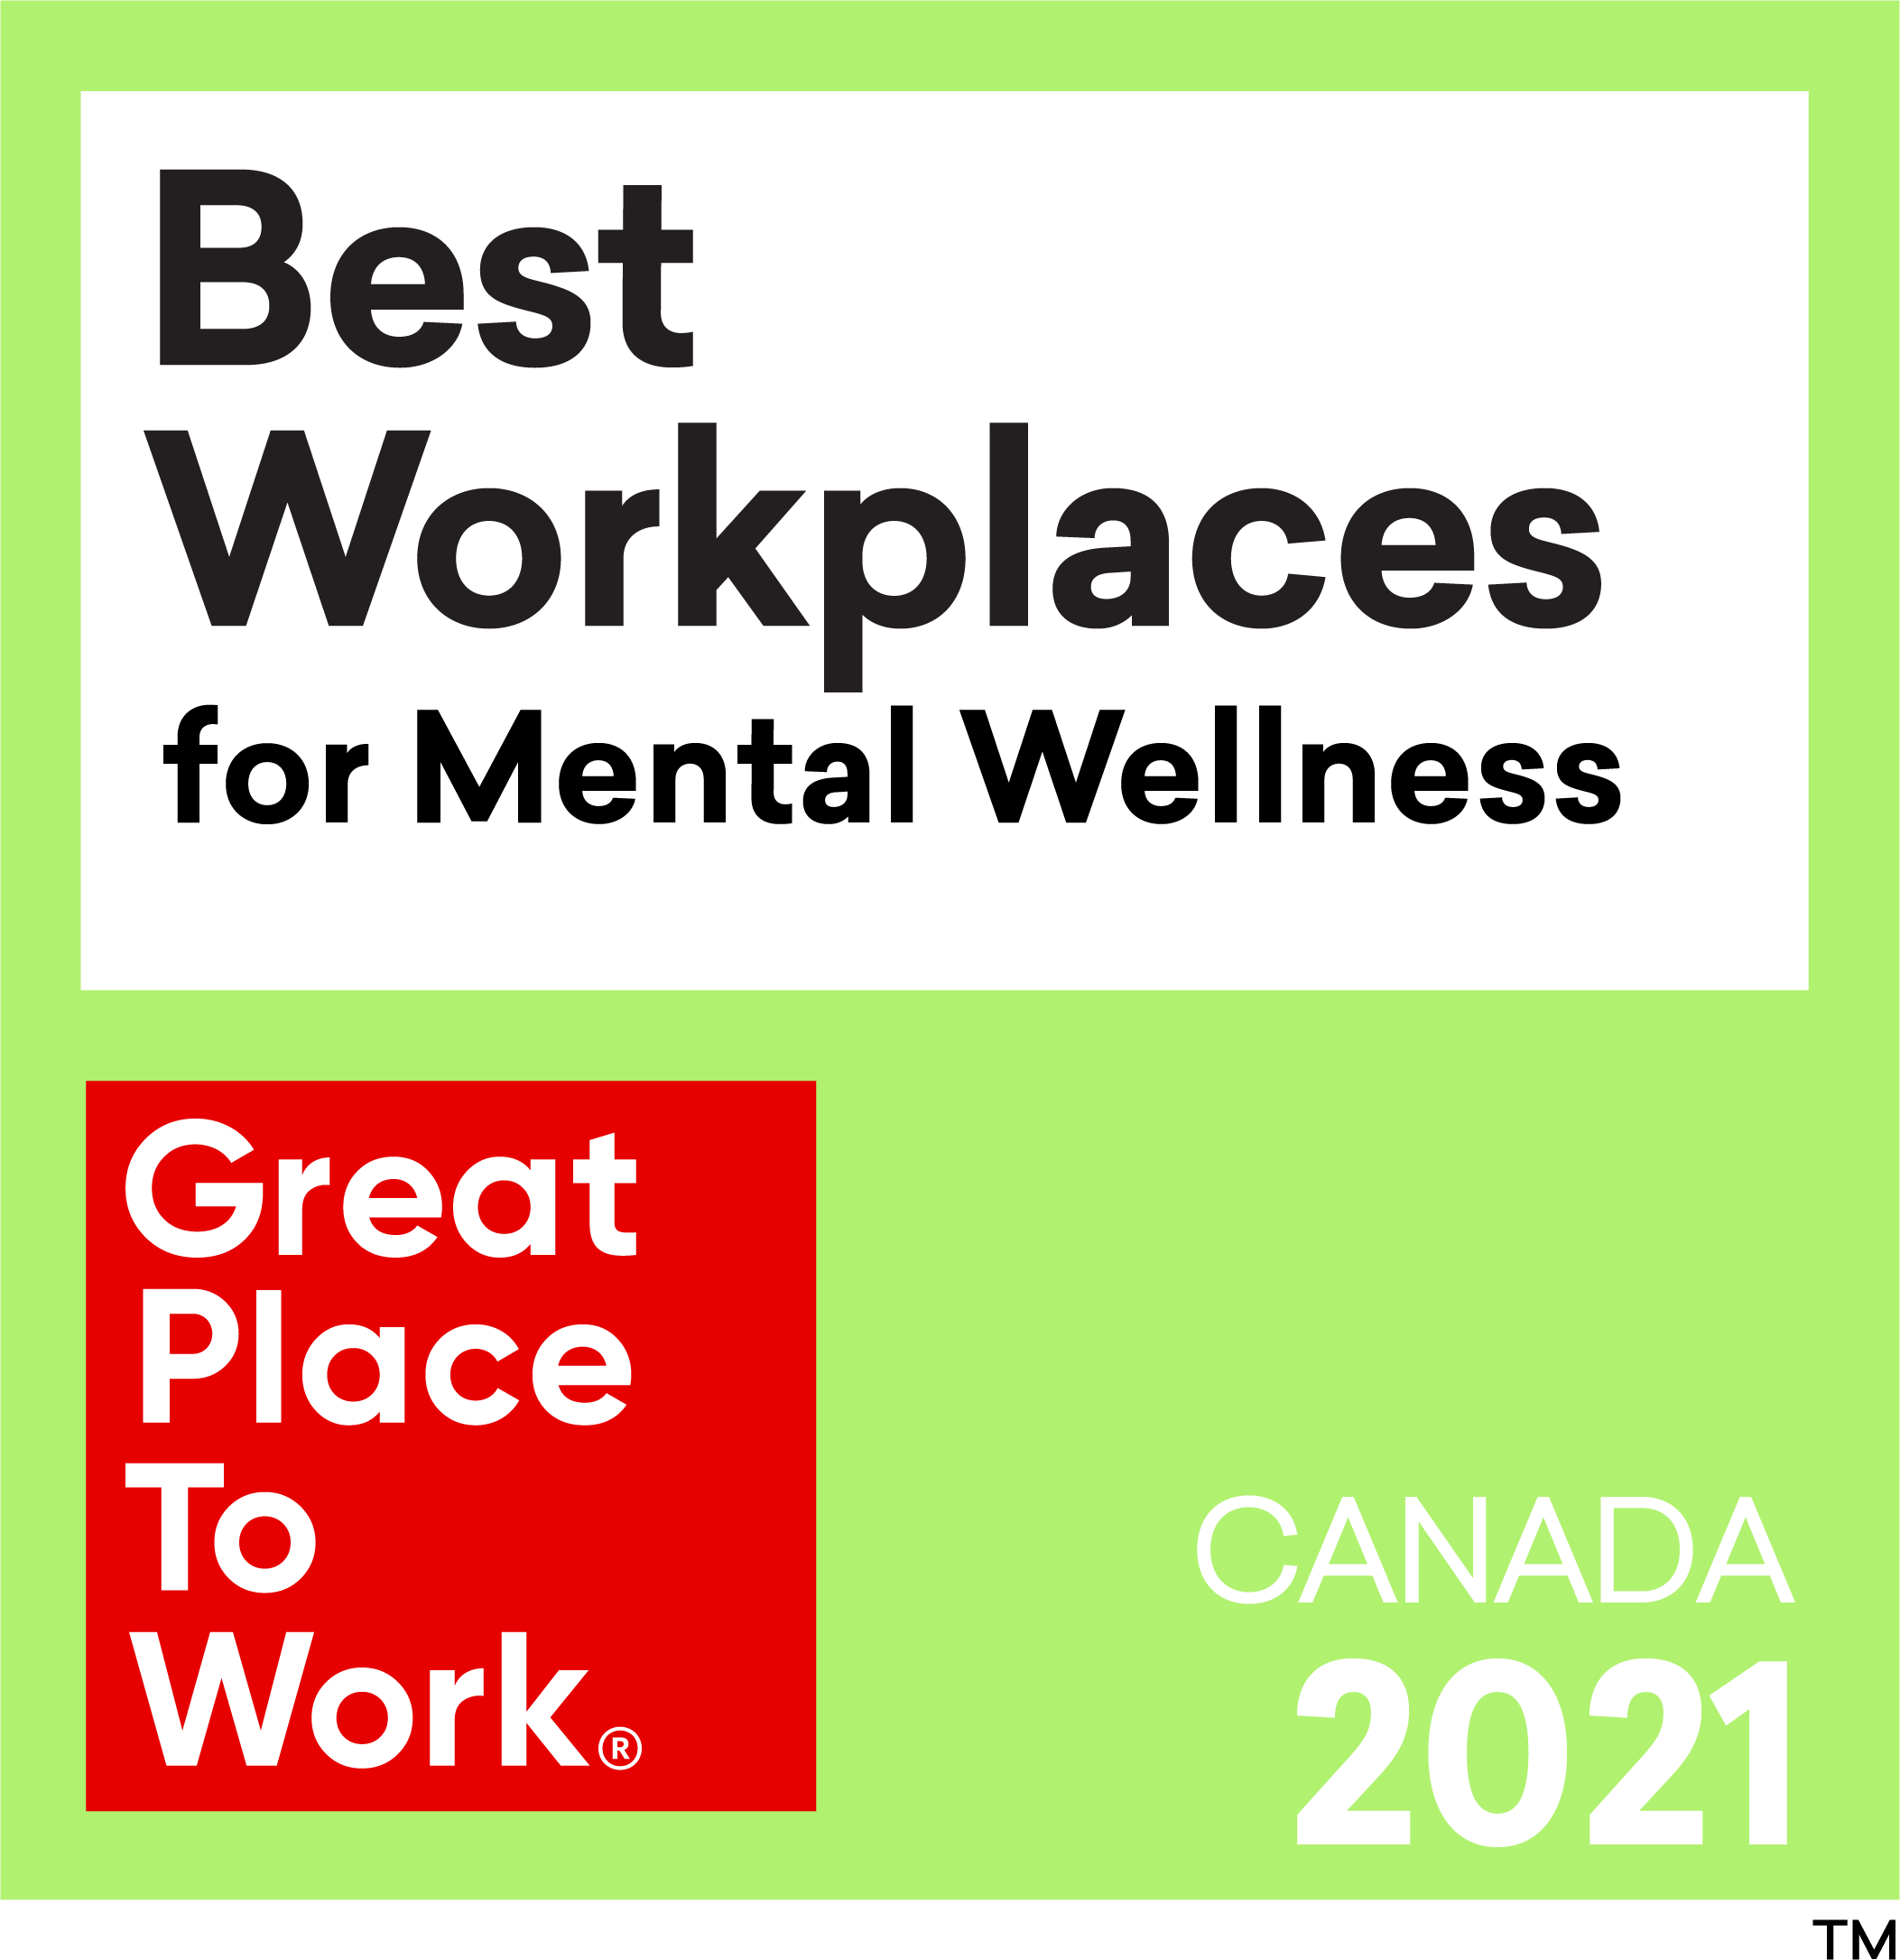 Best_Workplaces for Mental Wellness 2021